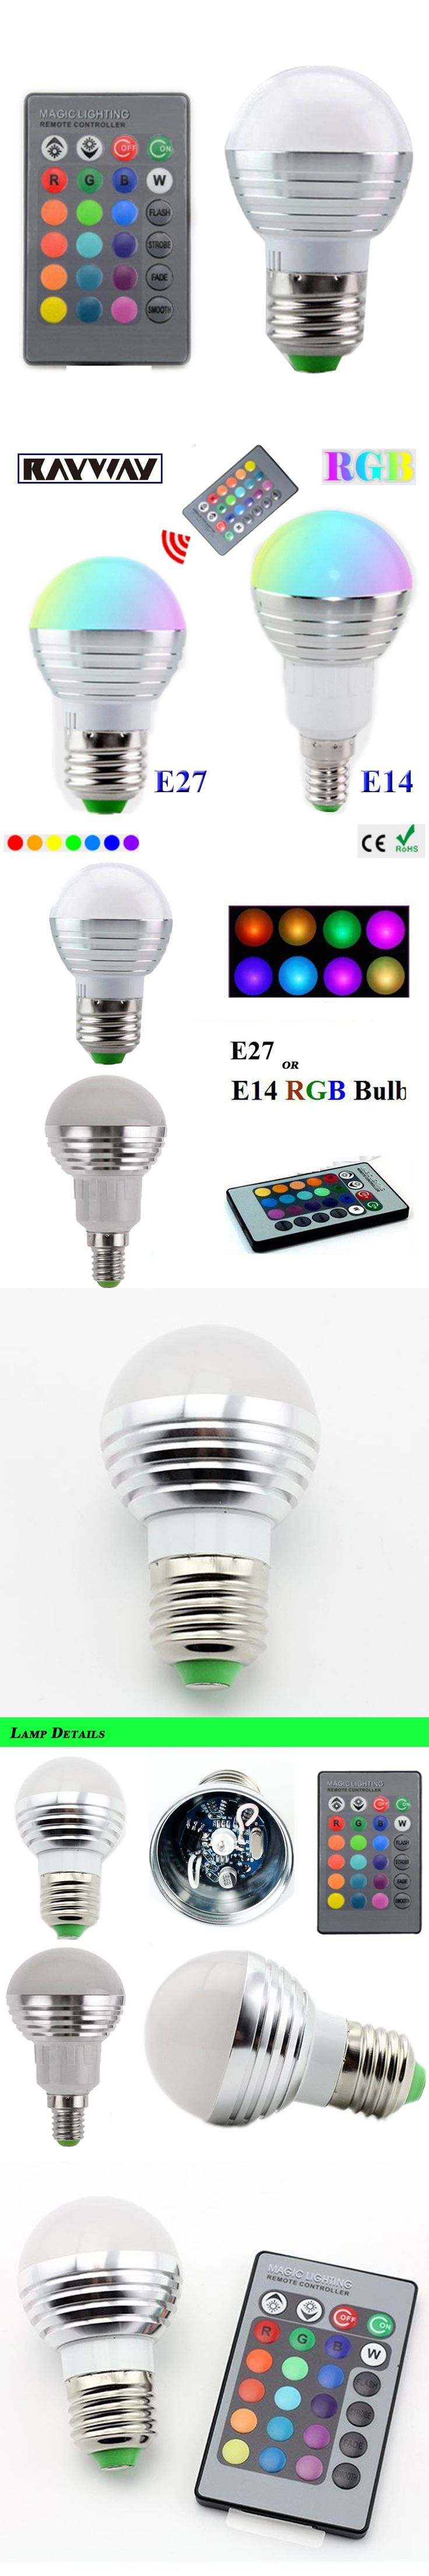 1Pcs E14 E27 LED RGB Bulb lamp AC110V 220V 3W LED RGB Spot light dimmable magic Holiday RGB lighting+IR Remote Control 16 colors